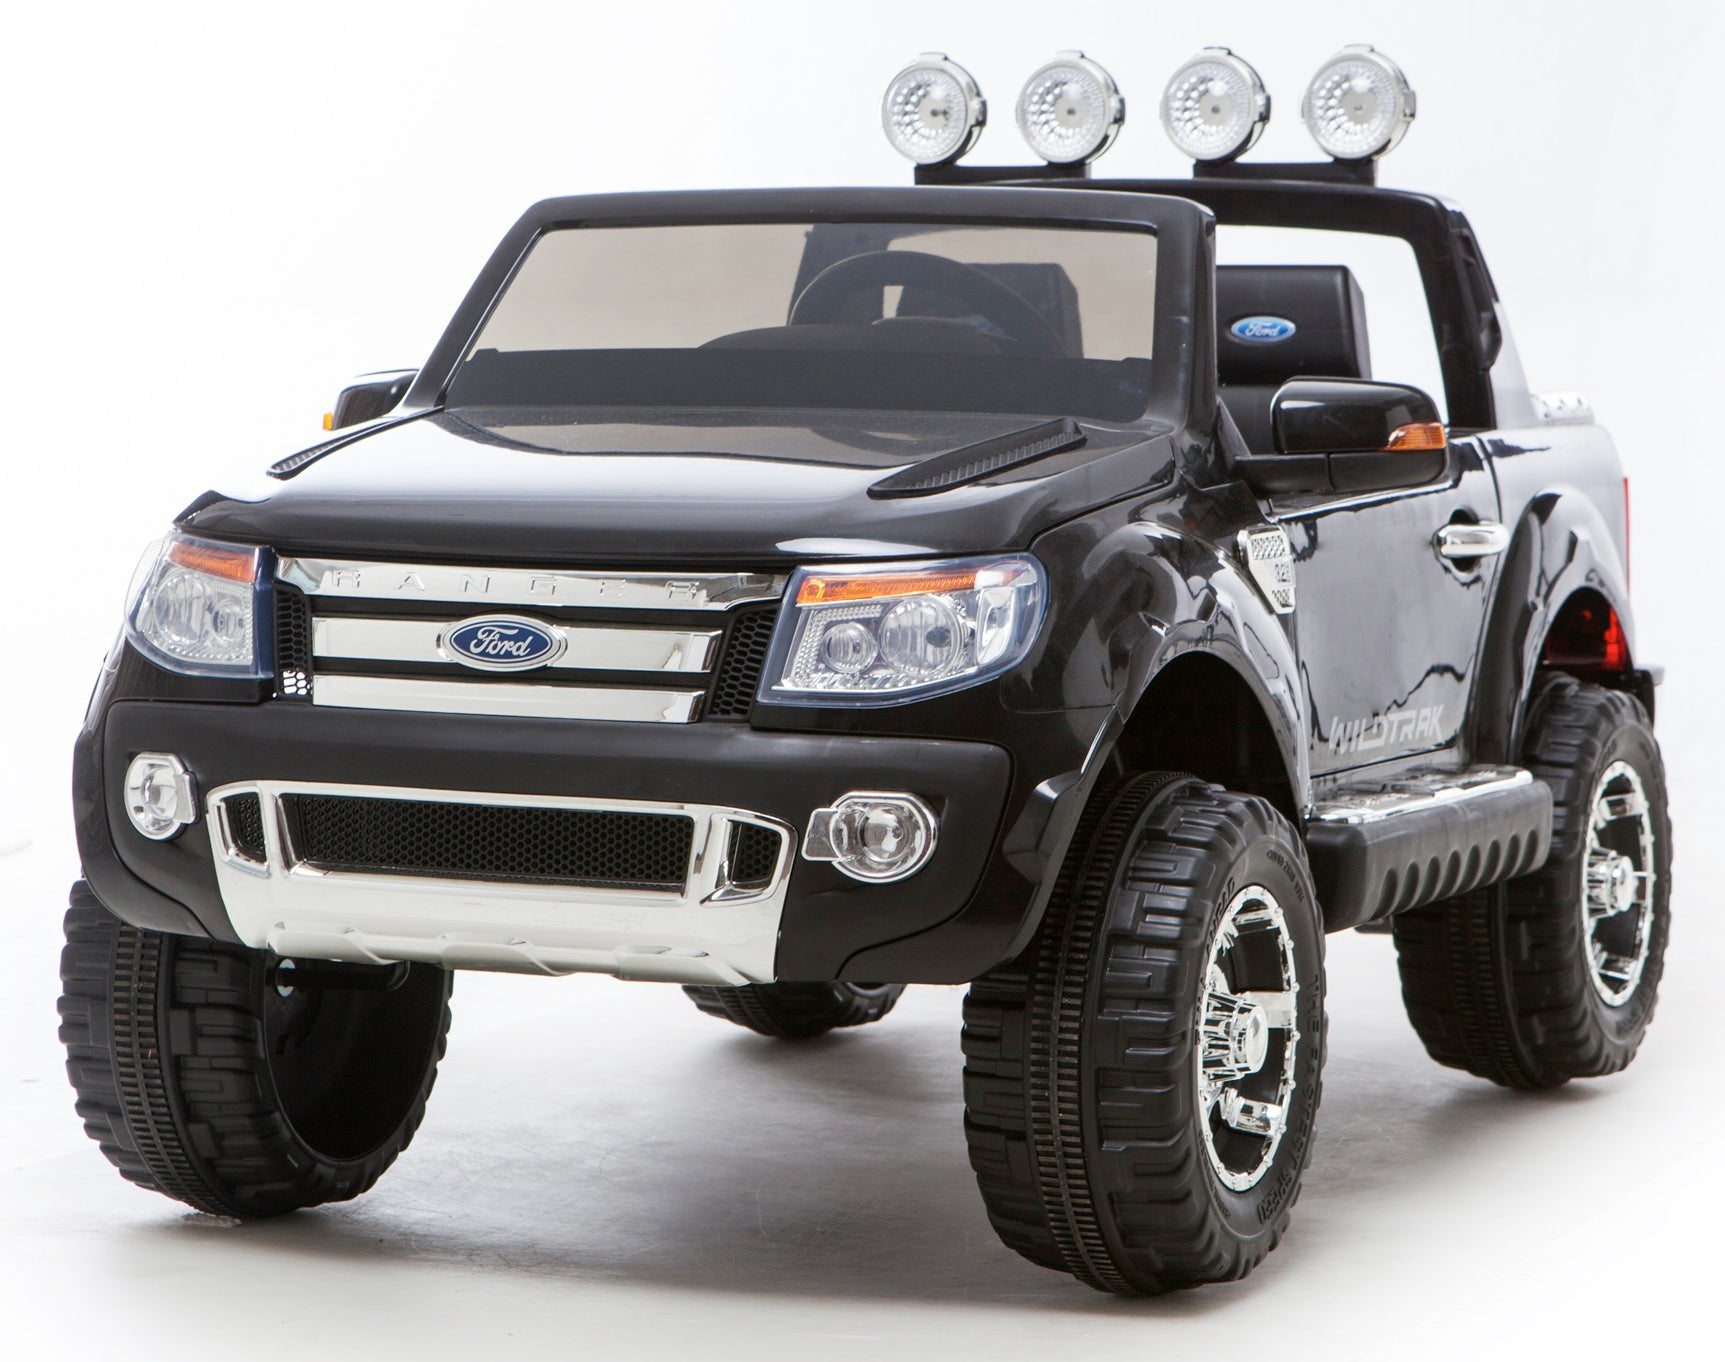 black ricco licensed ford ranger 4x4 kids electric ride on car with re ricco toys. Black Bedroom Furniture Sets. Home Design Ideas